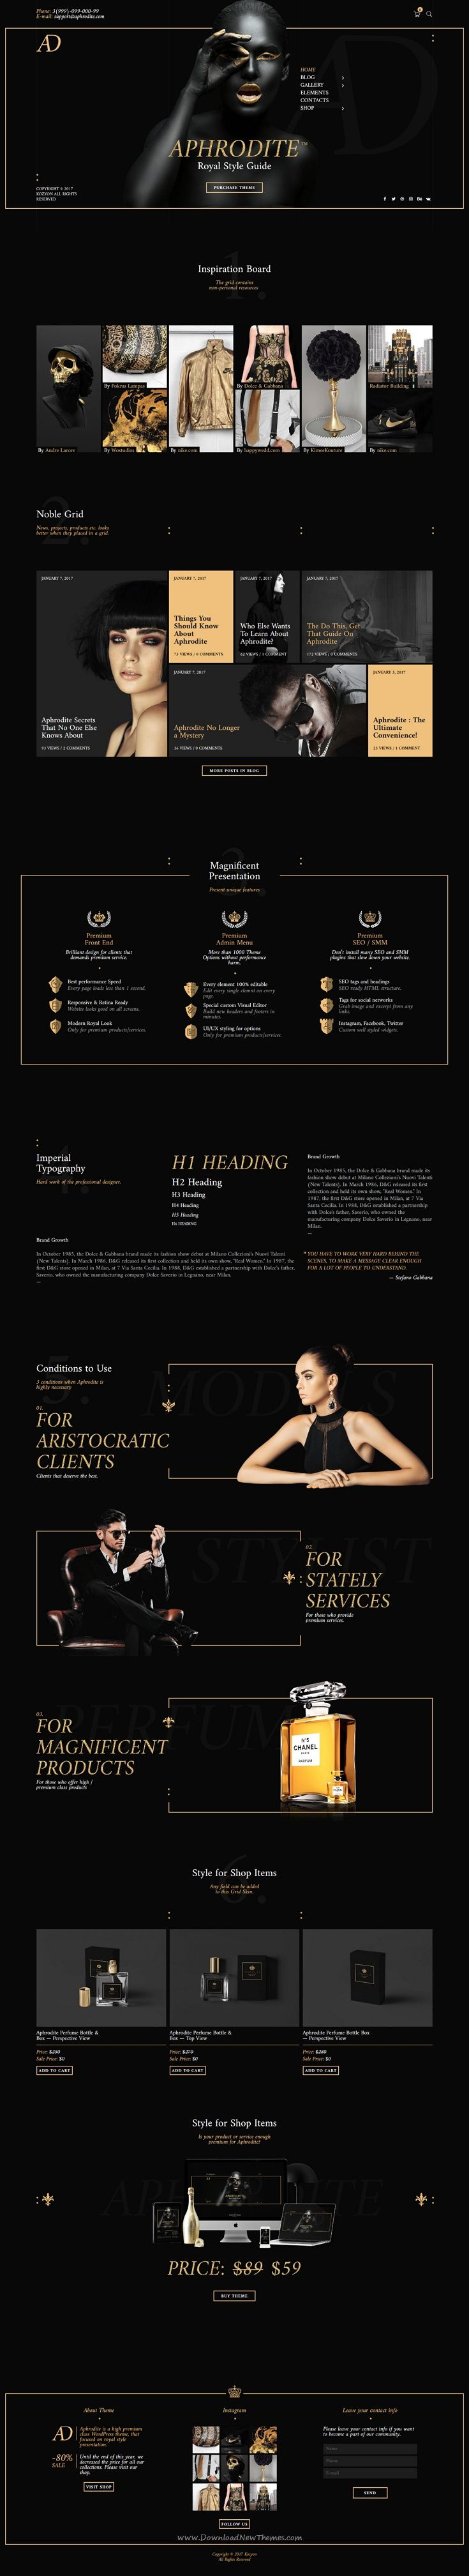 Aphrodite is a luxury responsive #WordPress theme for premium #products and #services eCommerce websites download now➩ https://themeforest.net/item/aphrodite-royal-website-style/19296664?ref=Datasata